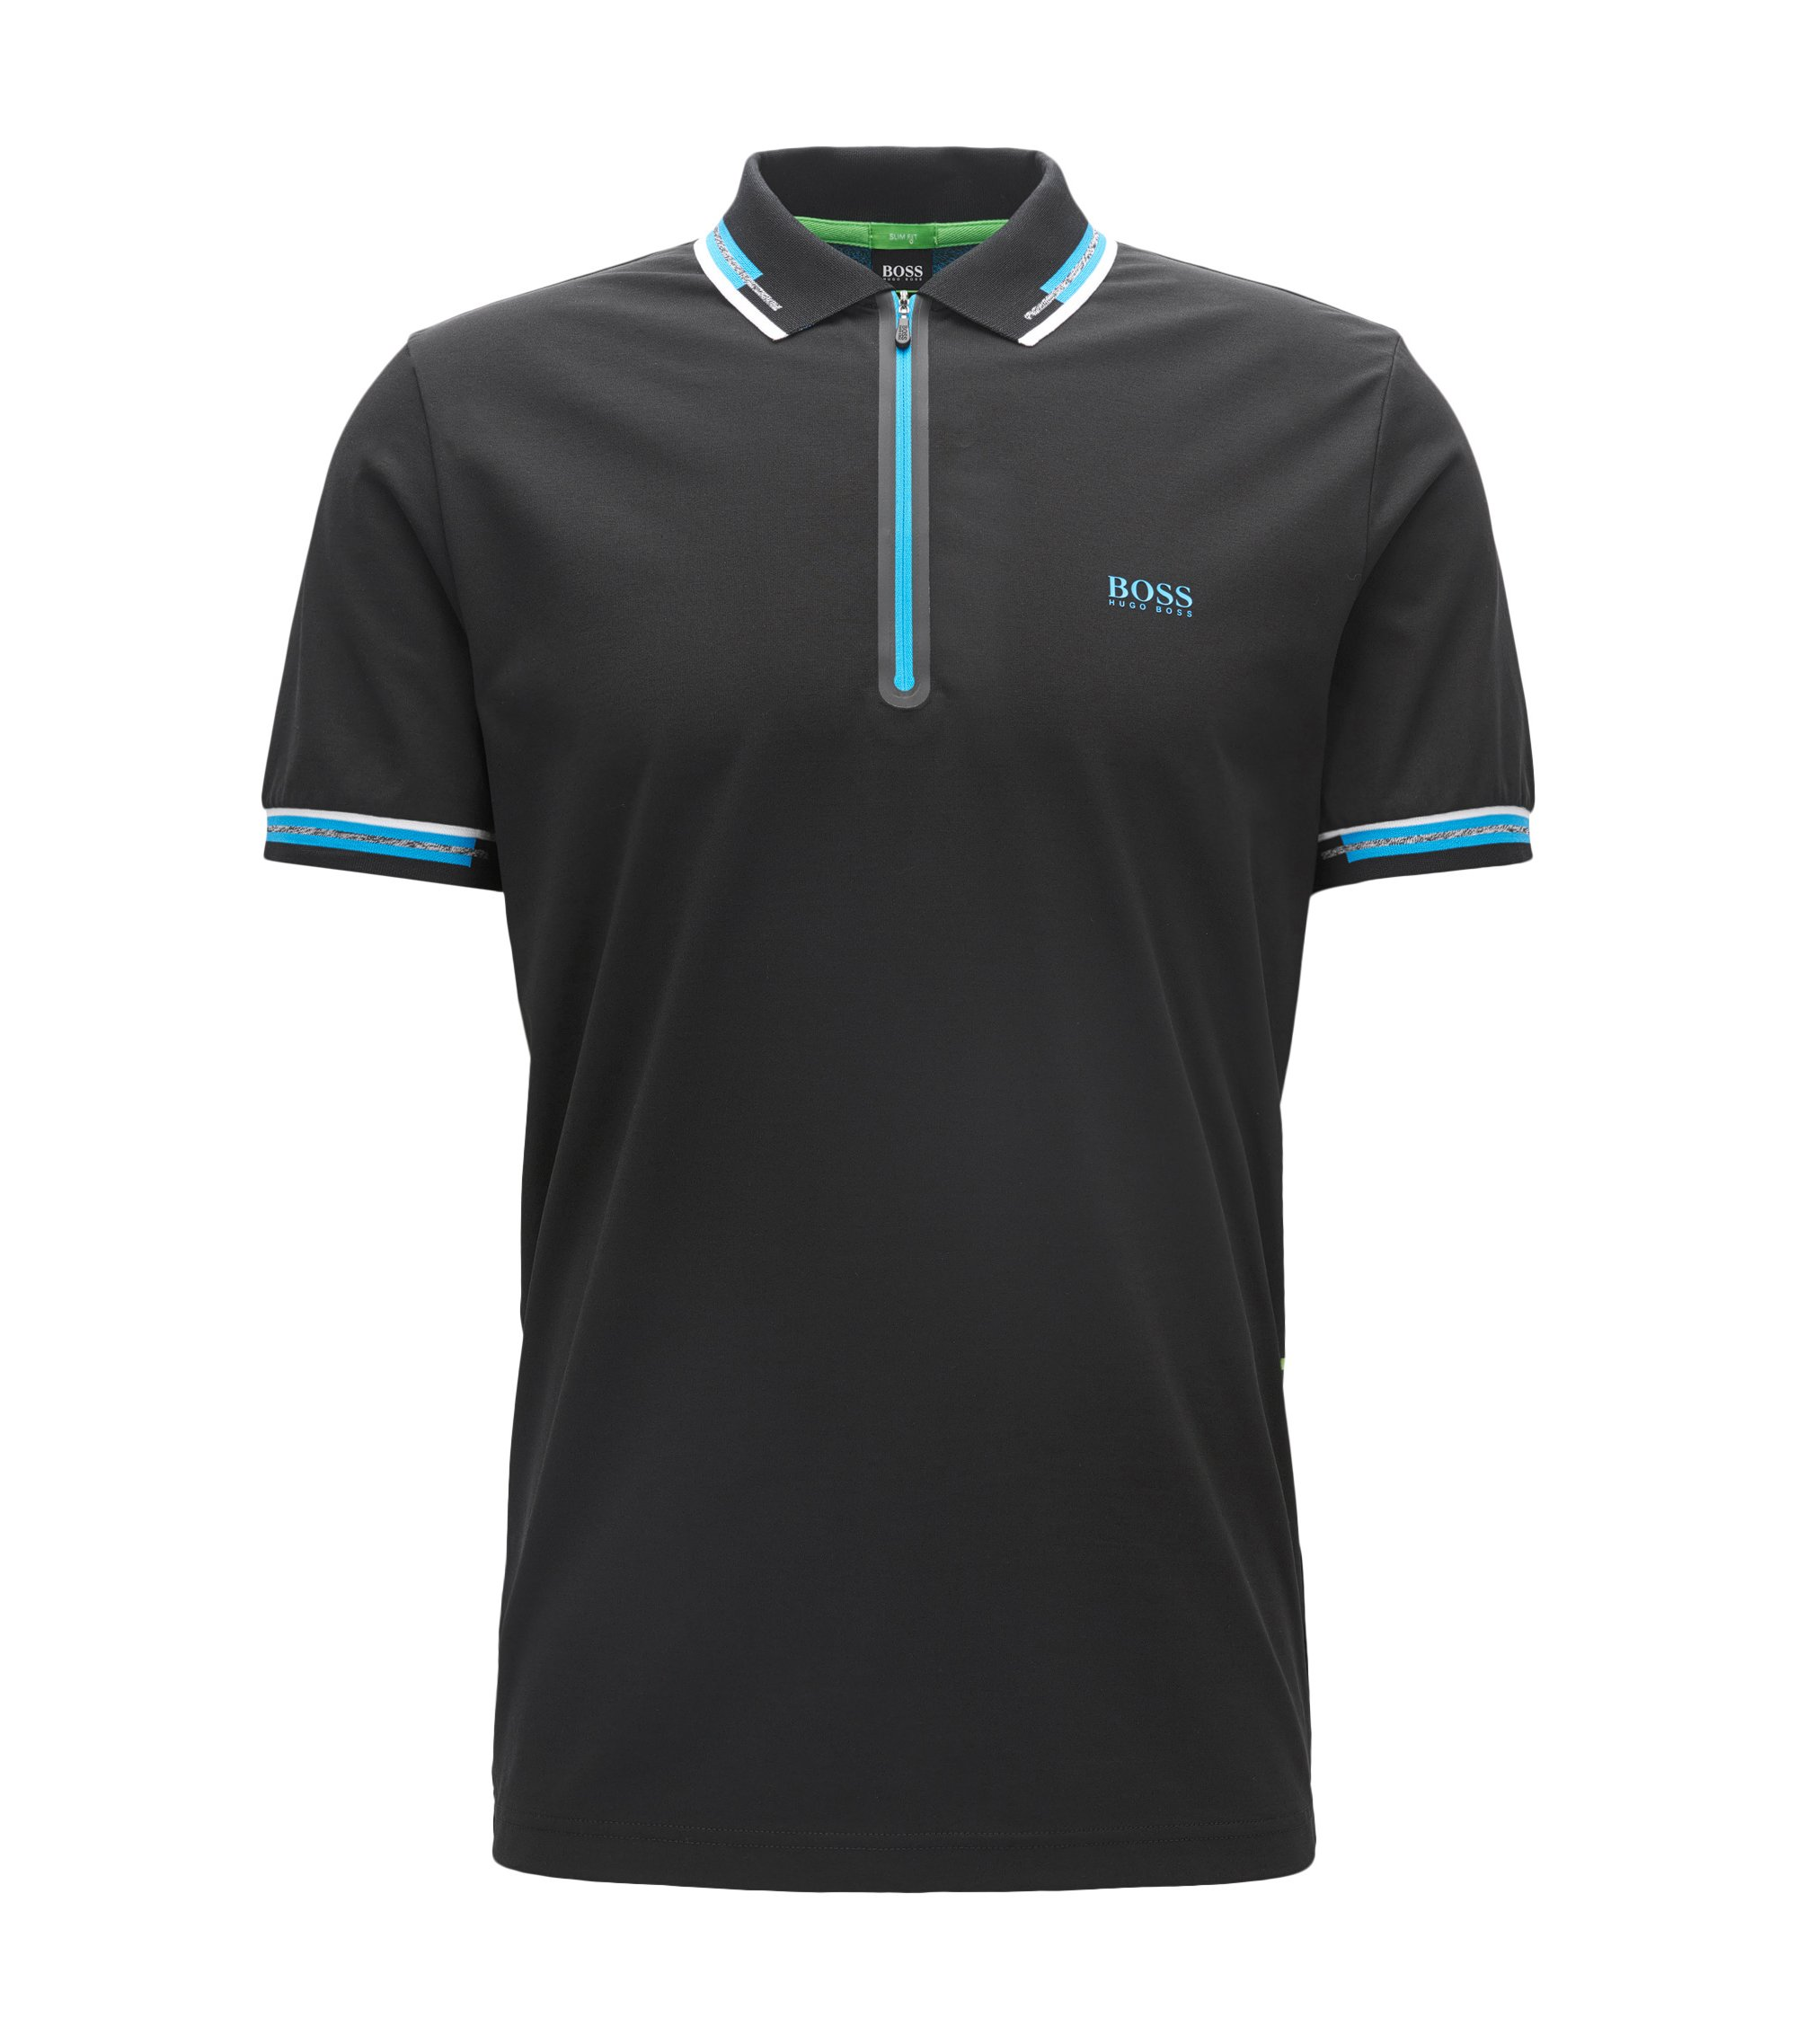 Cotton Blend Polo Shirt | Pariq, Black